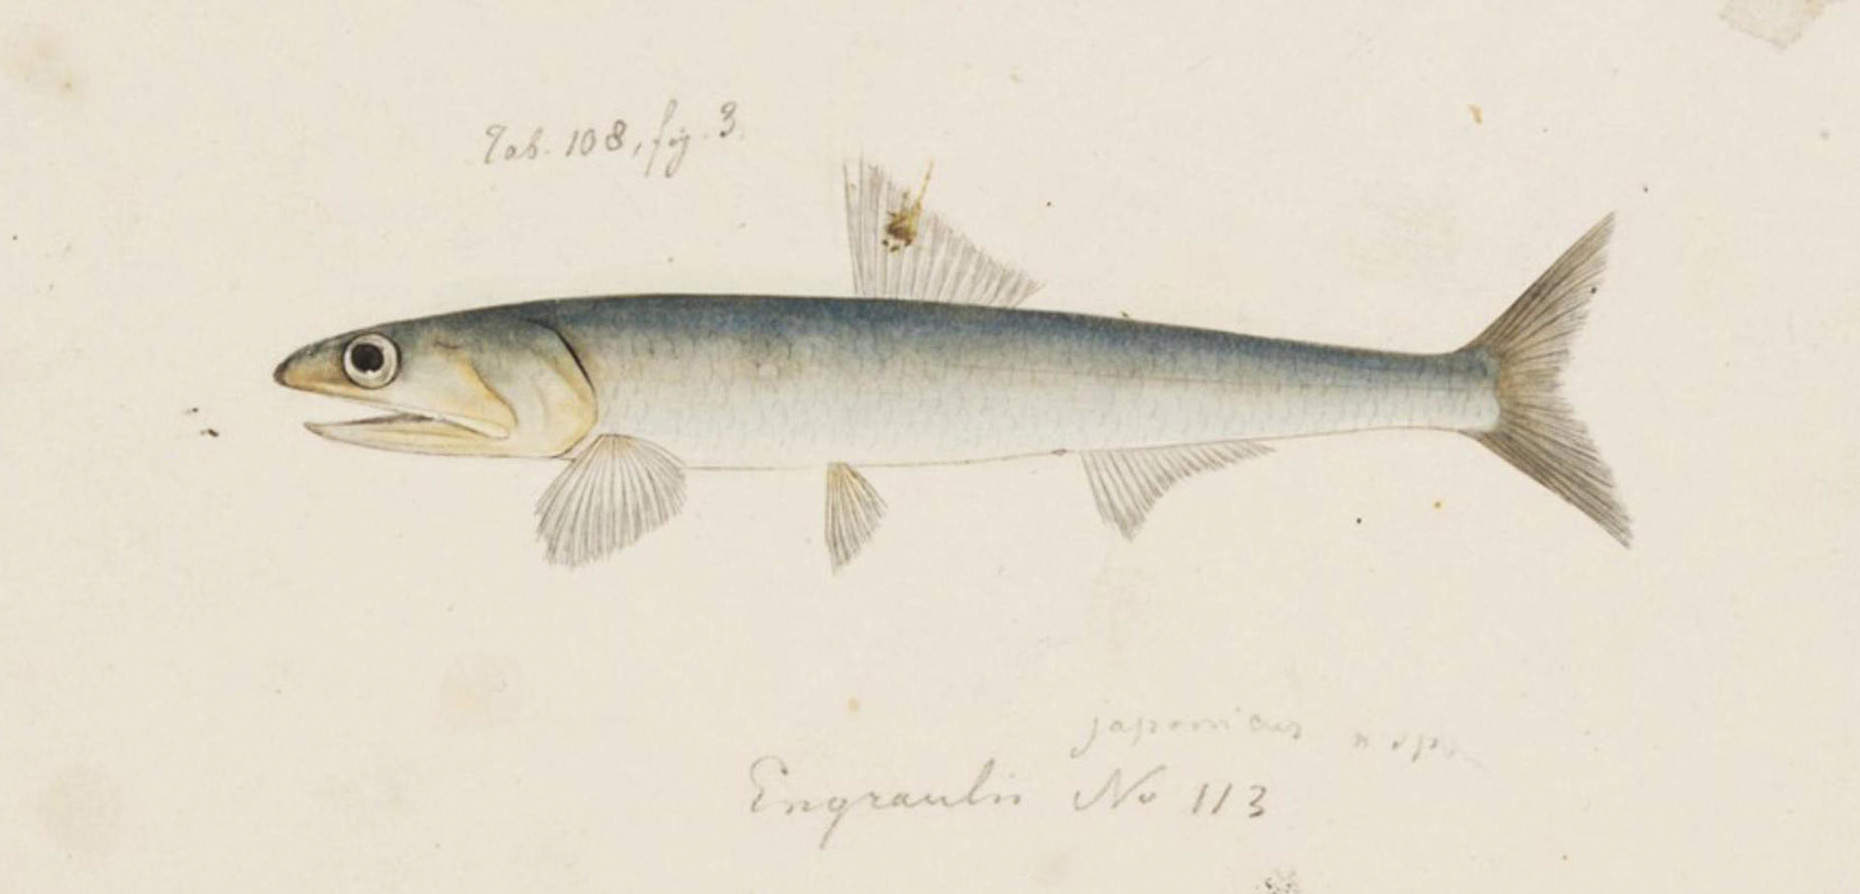 A portrait of a Japanese anchovy by Japanese artist Kawahara Keiga from the 1820s